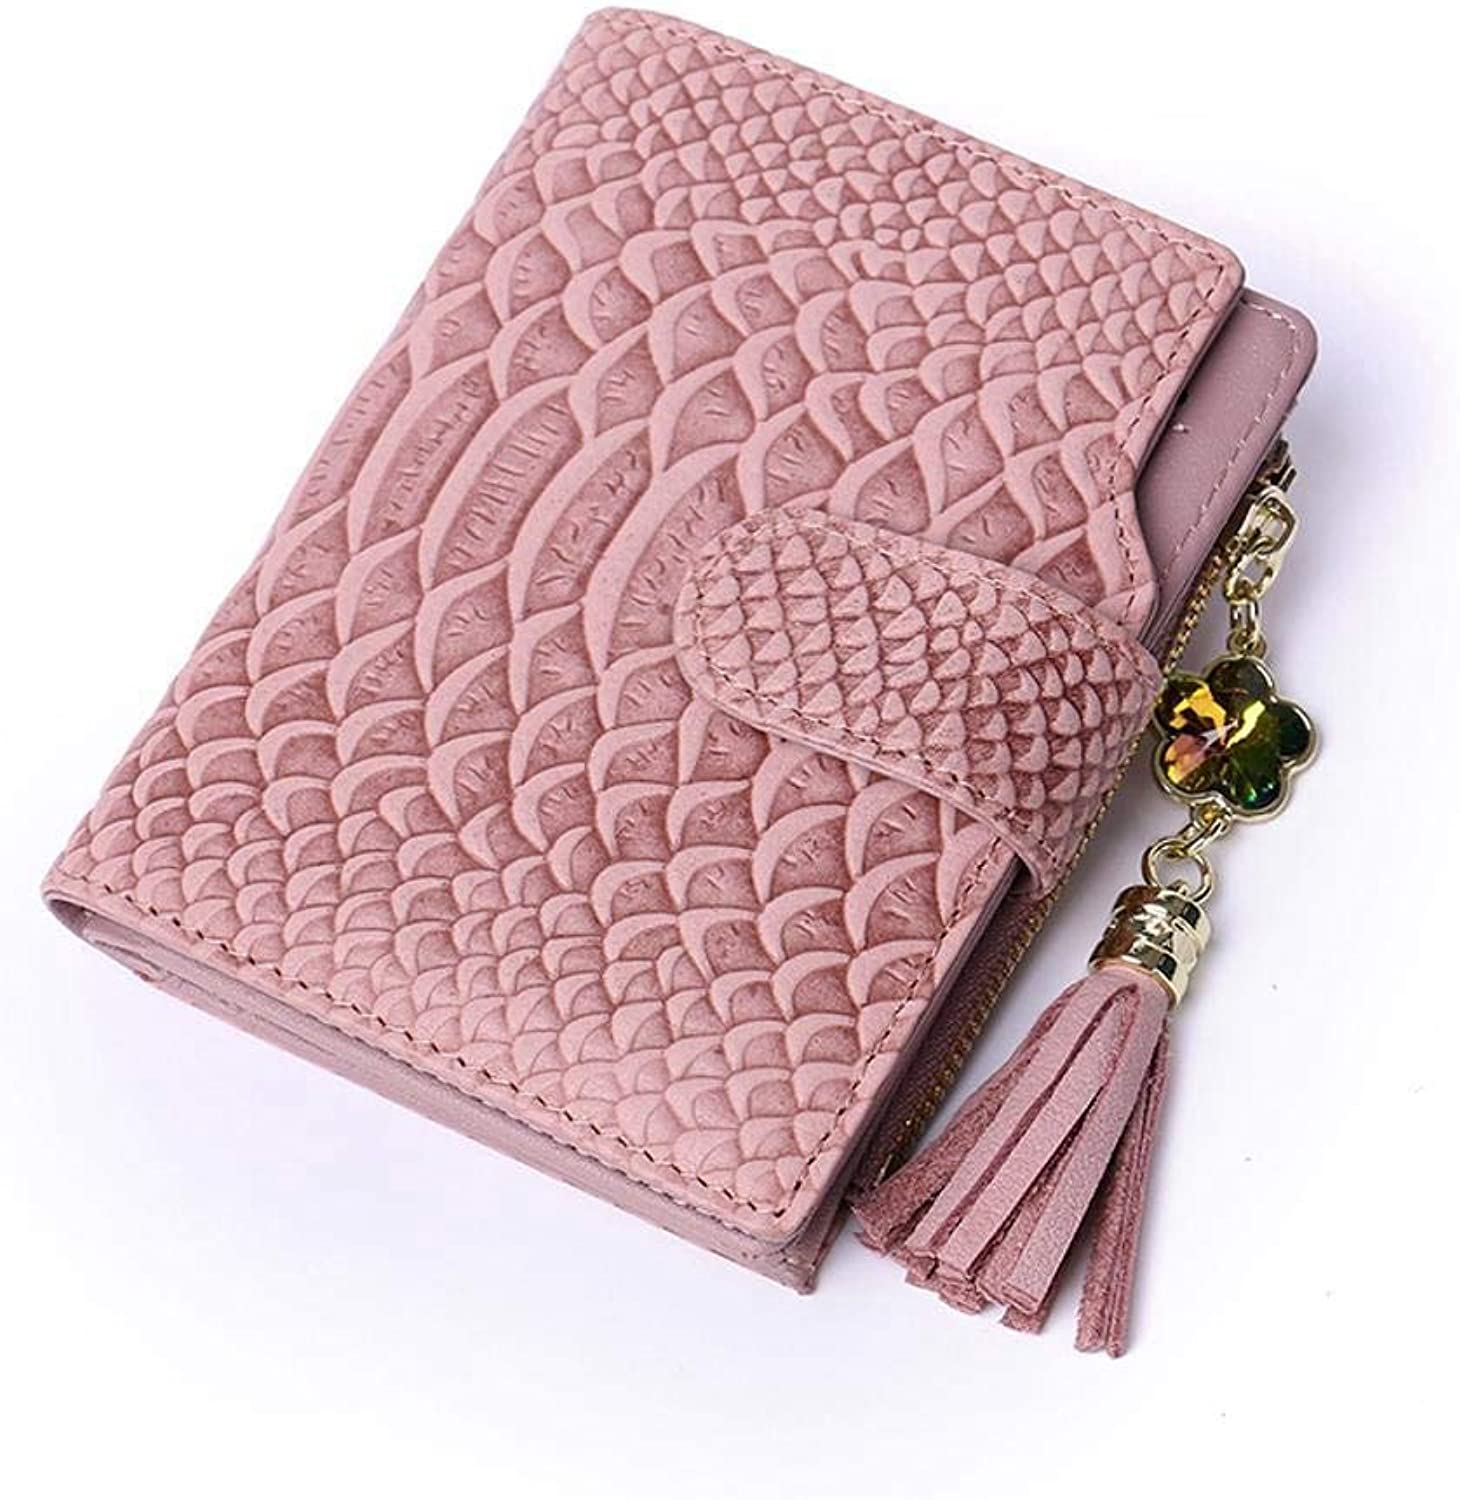 Girls Purse Lady Short Wallet Lady's Buckle Calf Leather Small Change Bag